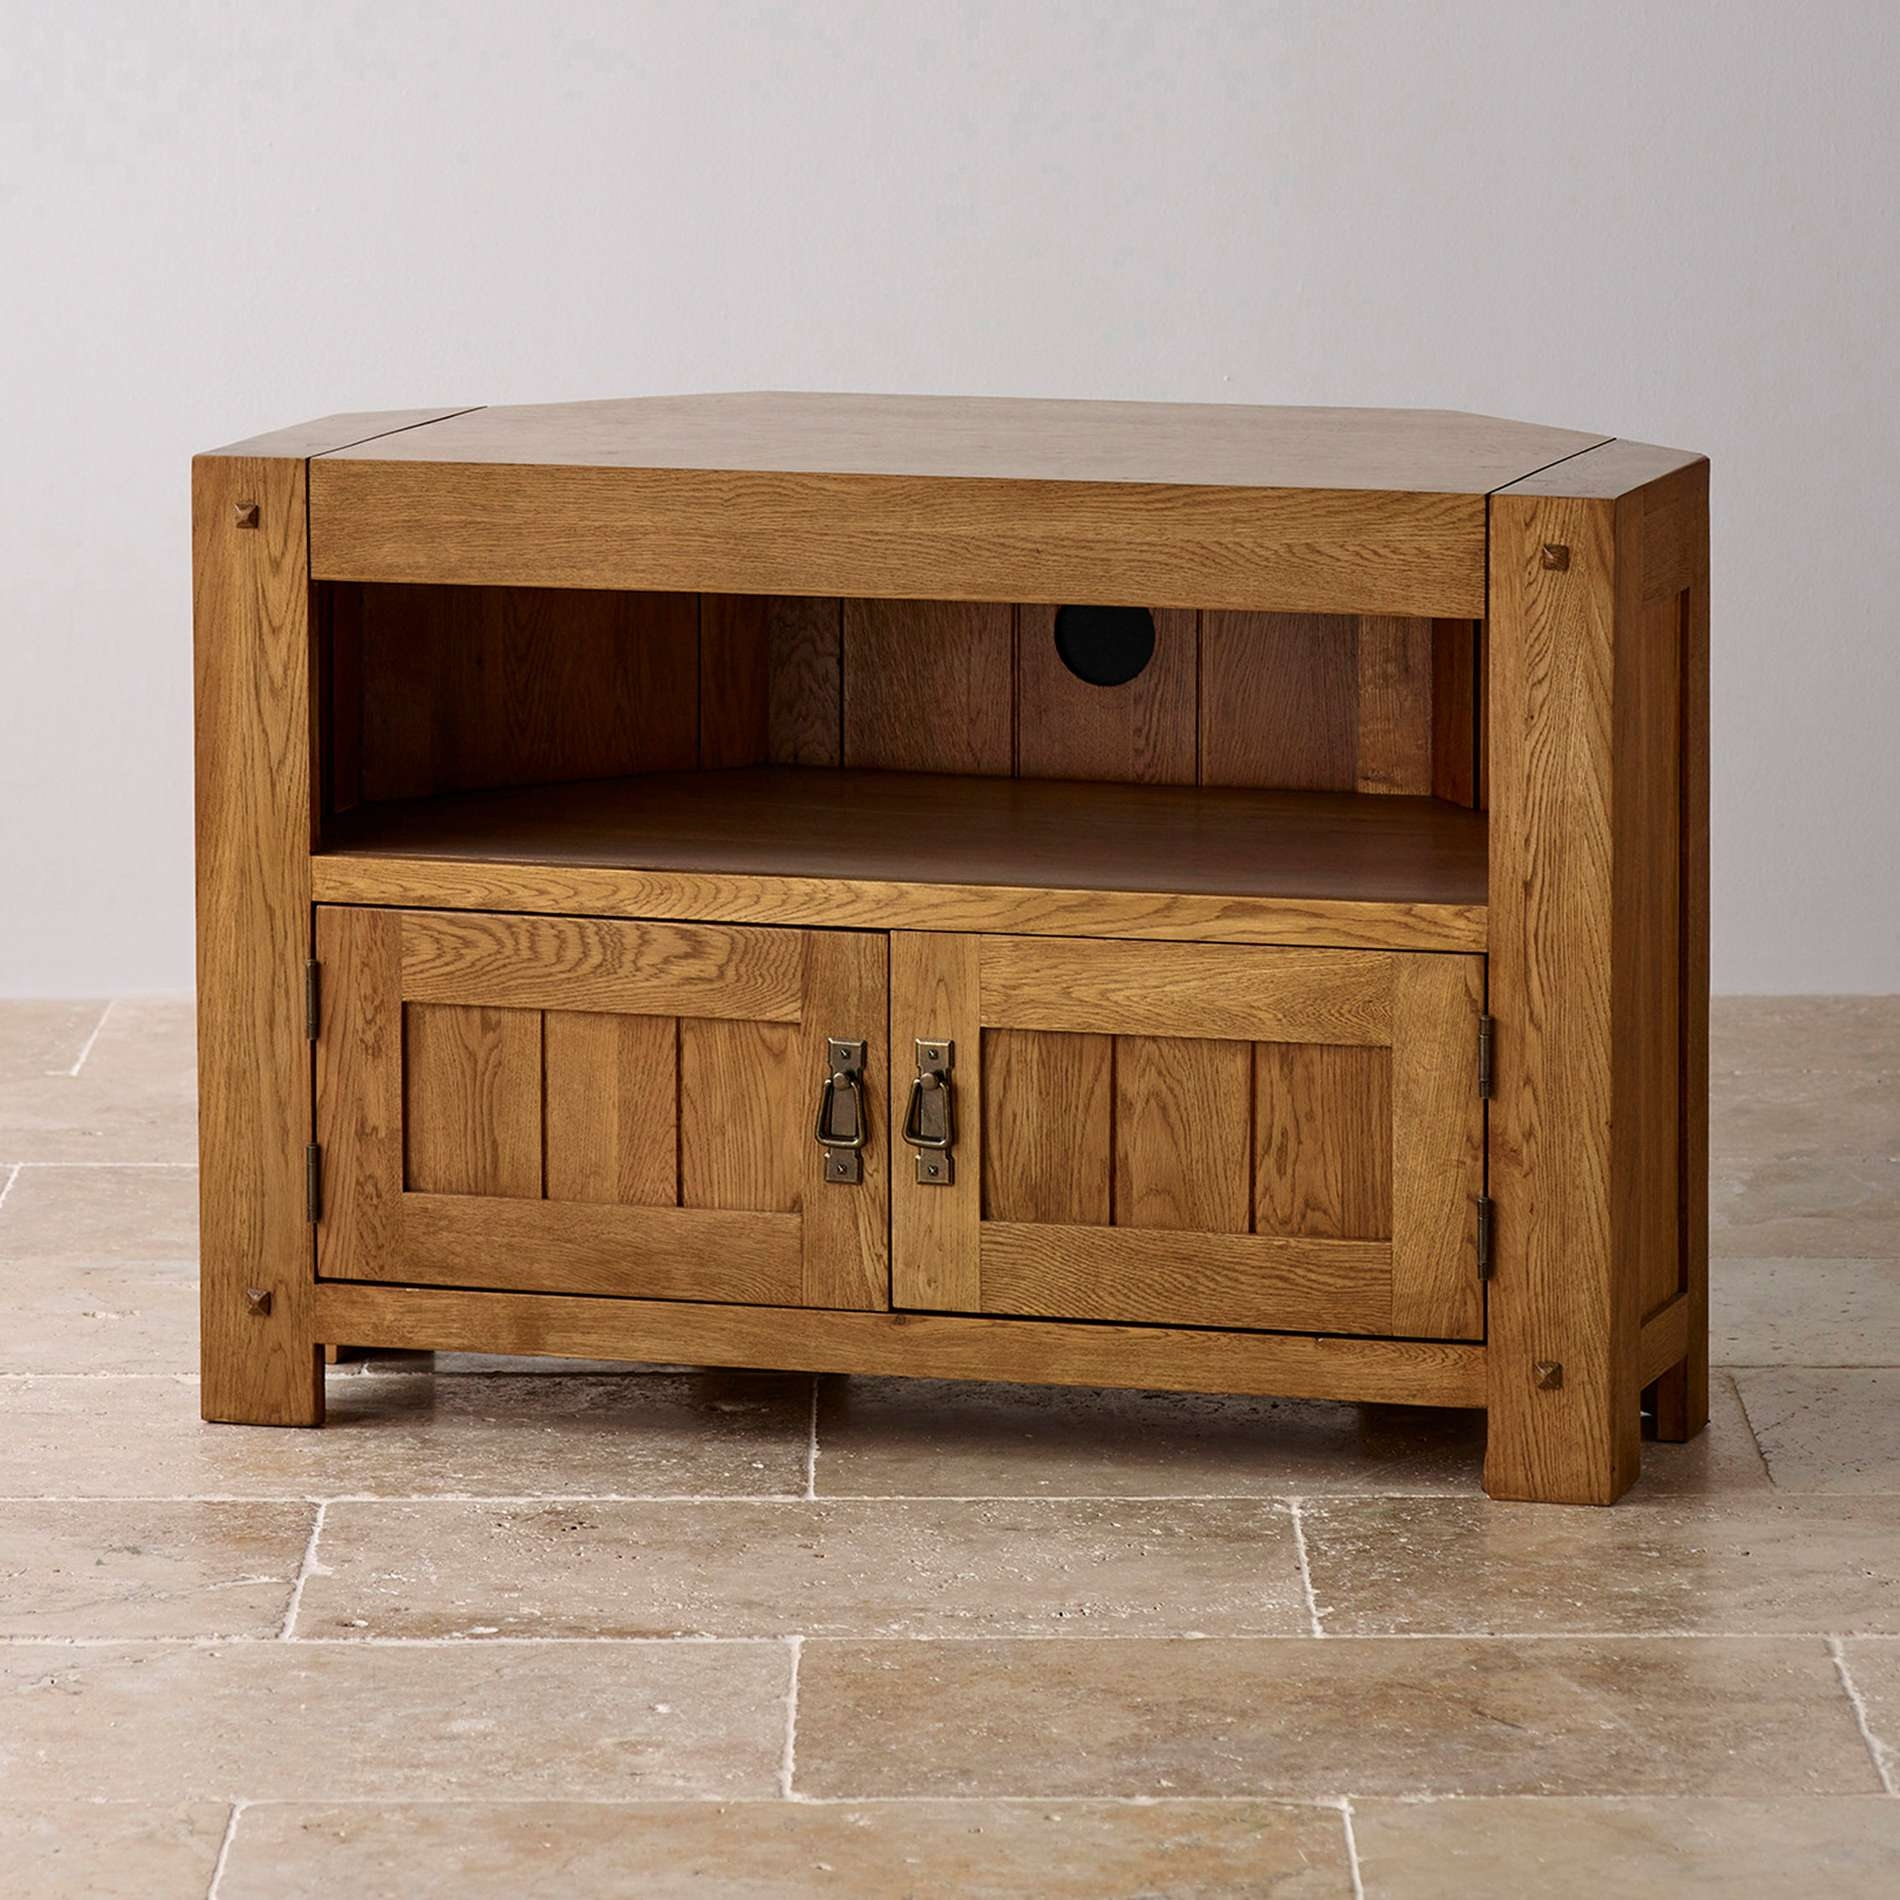 Epic Rustic Corner Tv Stand 55 For Your Home Design Ideas With With Rustic Corner Tv Stands (View 5 of 20)